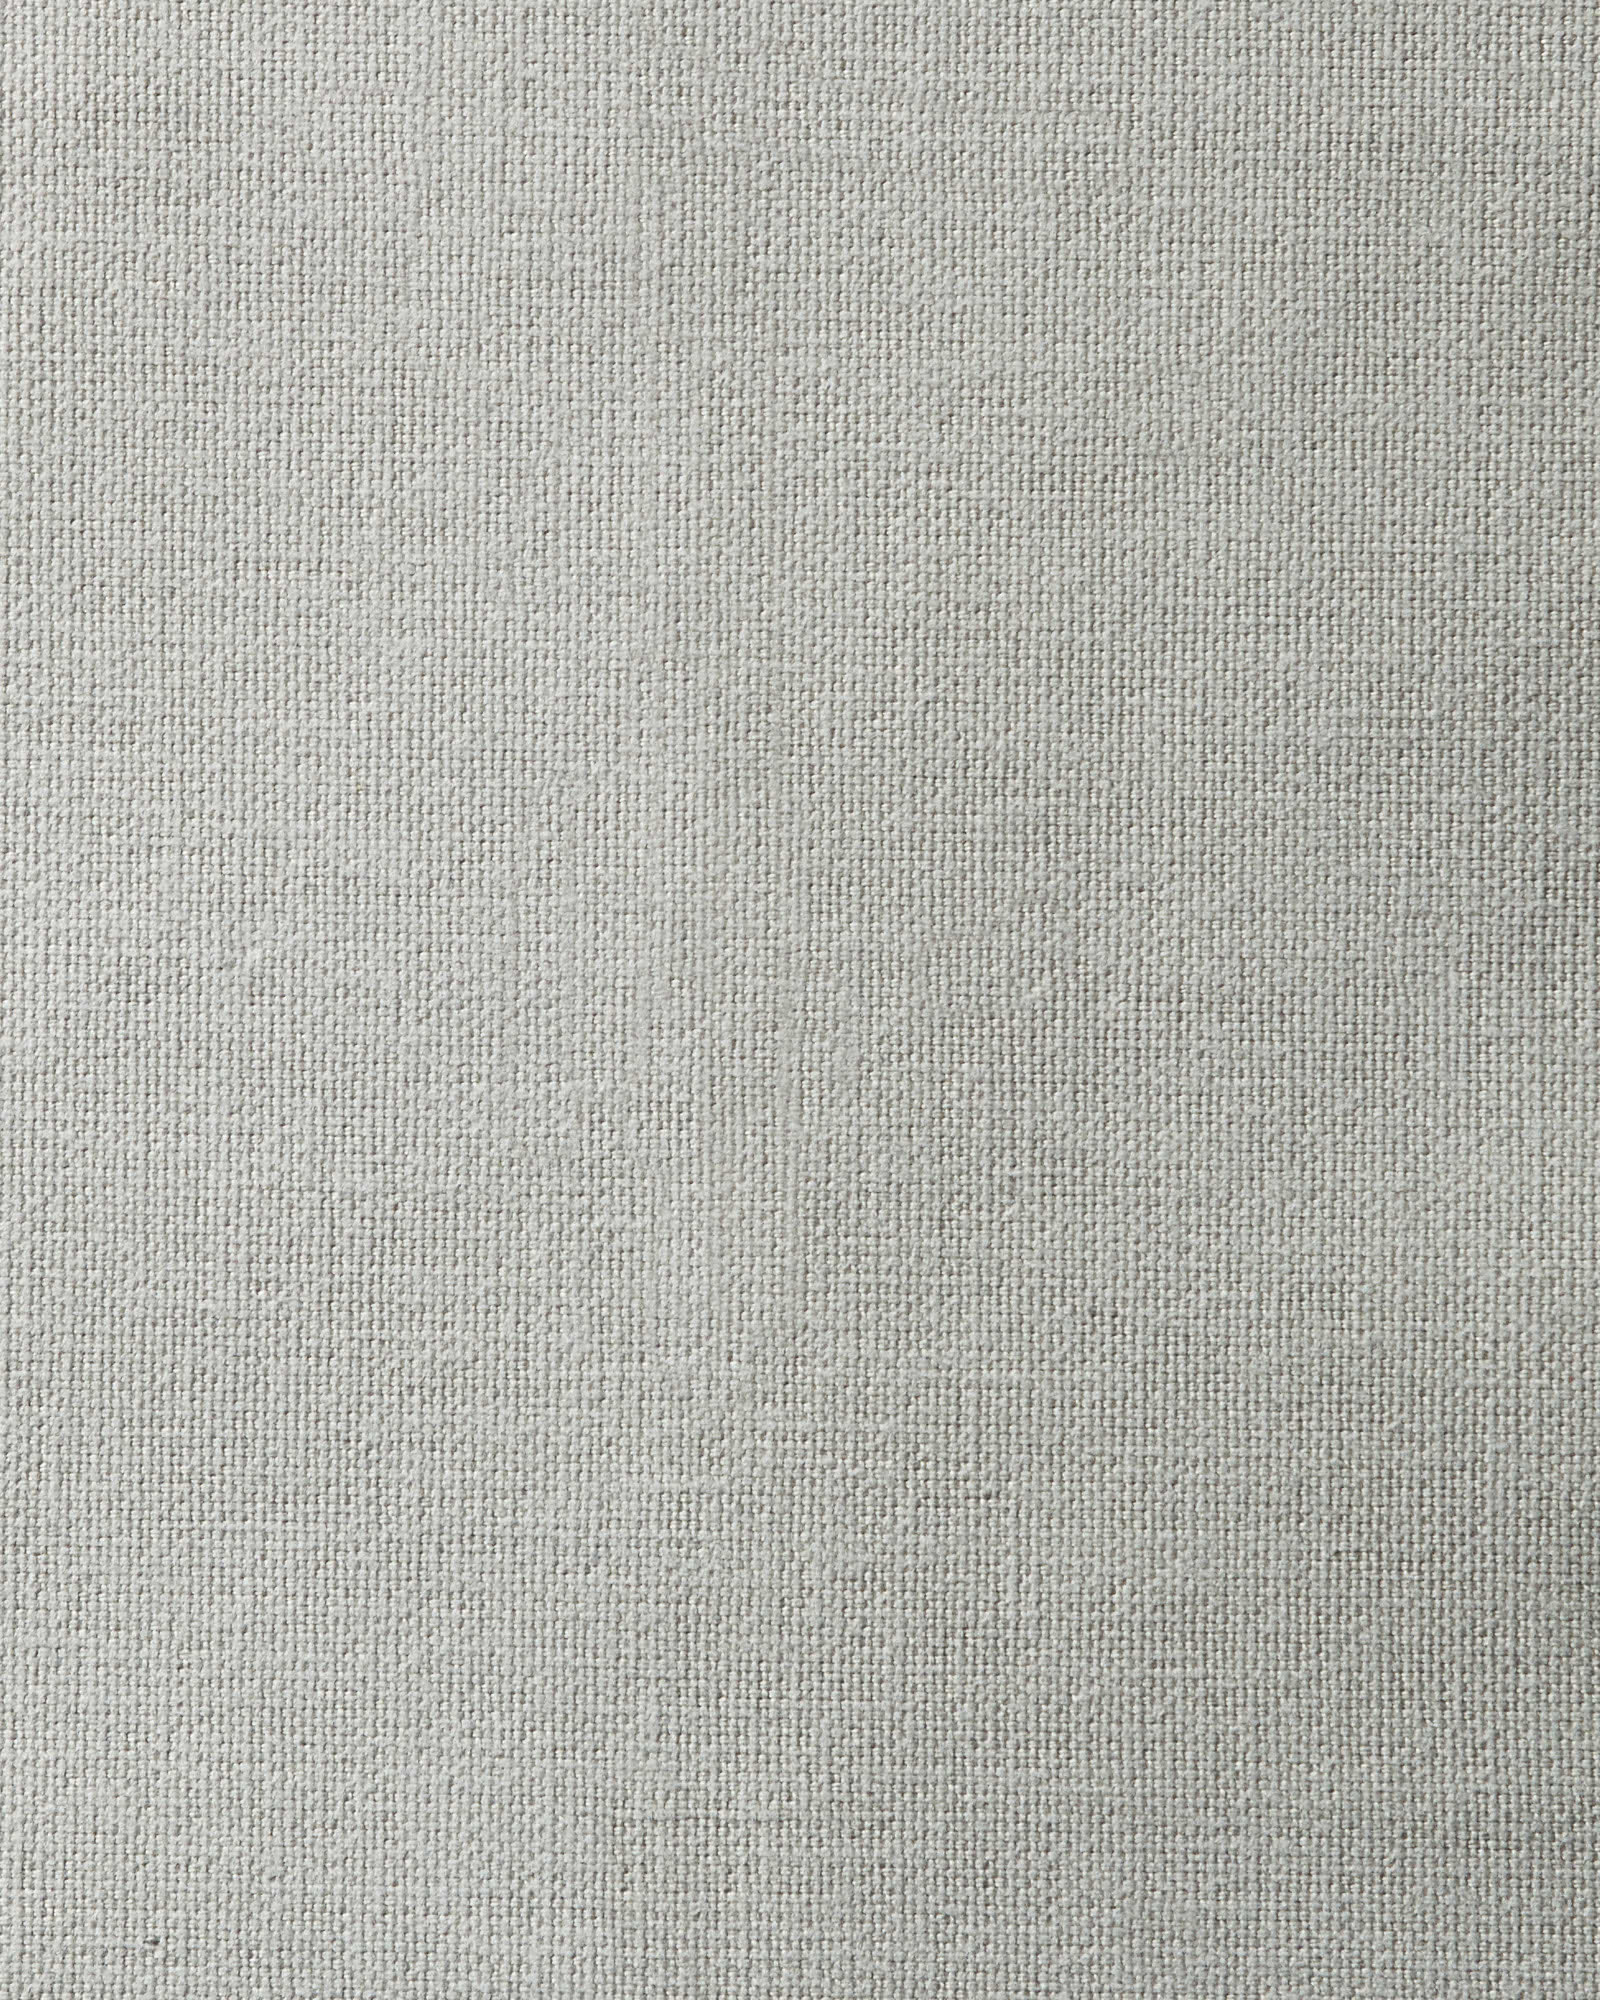 Brushed Cotton Canvas